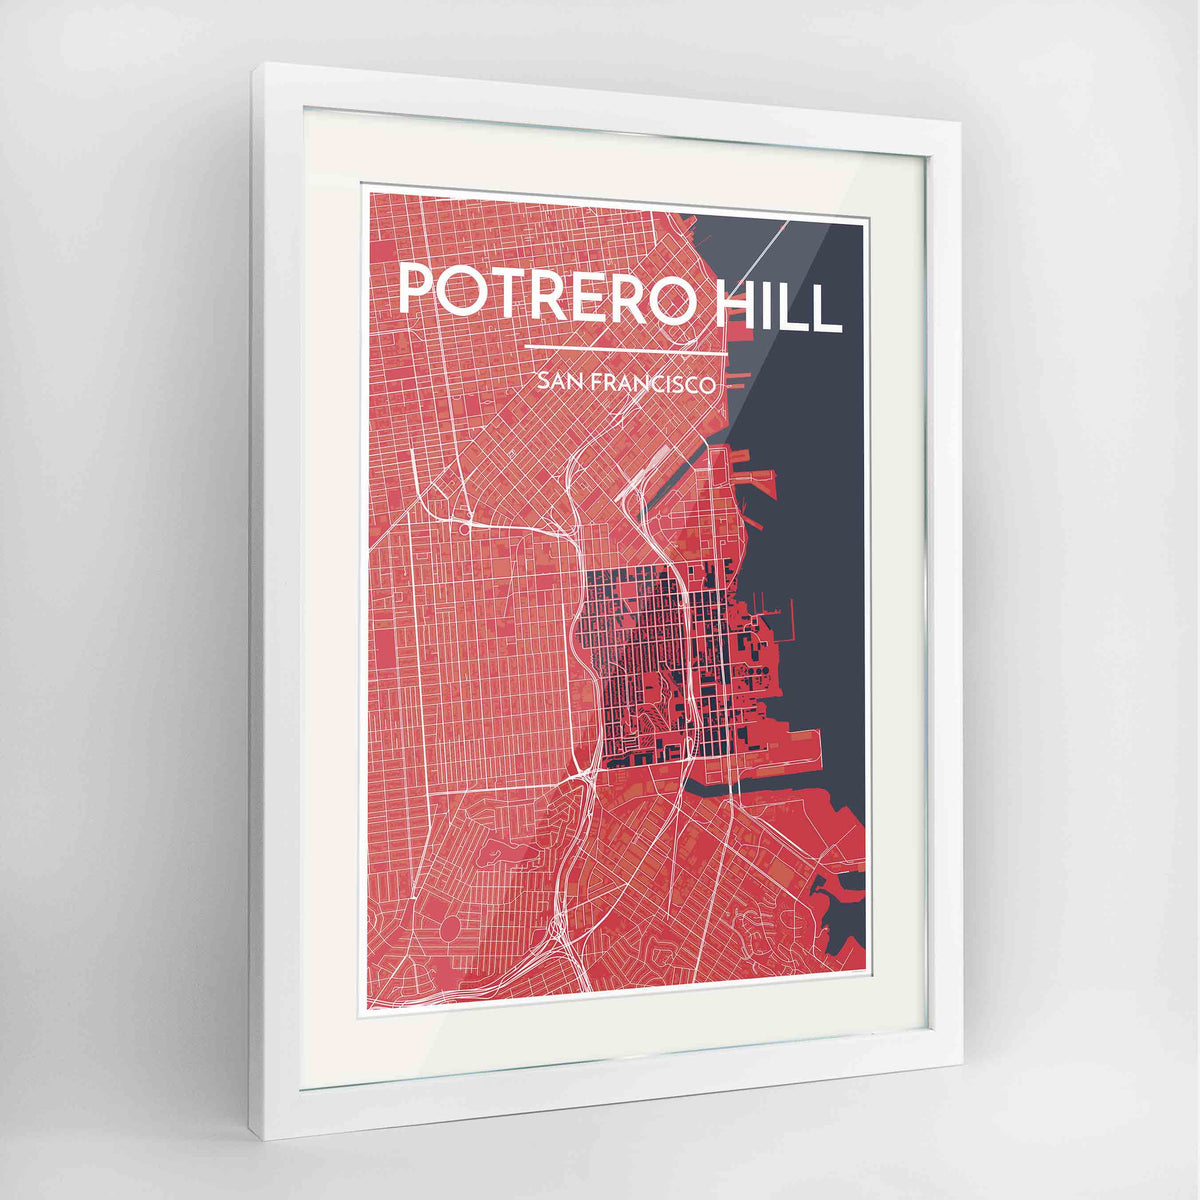 "Framed Potrero Hill San Francisco Map Art Print 24x36"" Contemporary White frame Point Two Design Group"